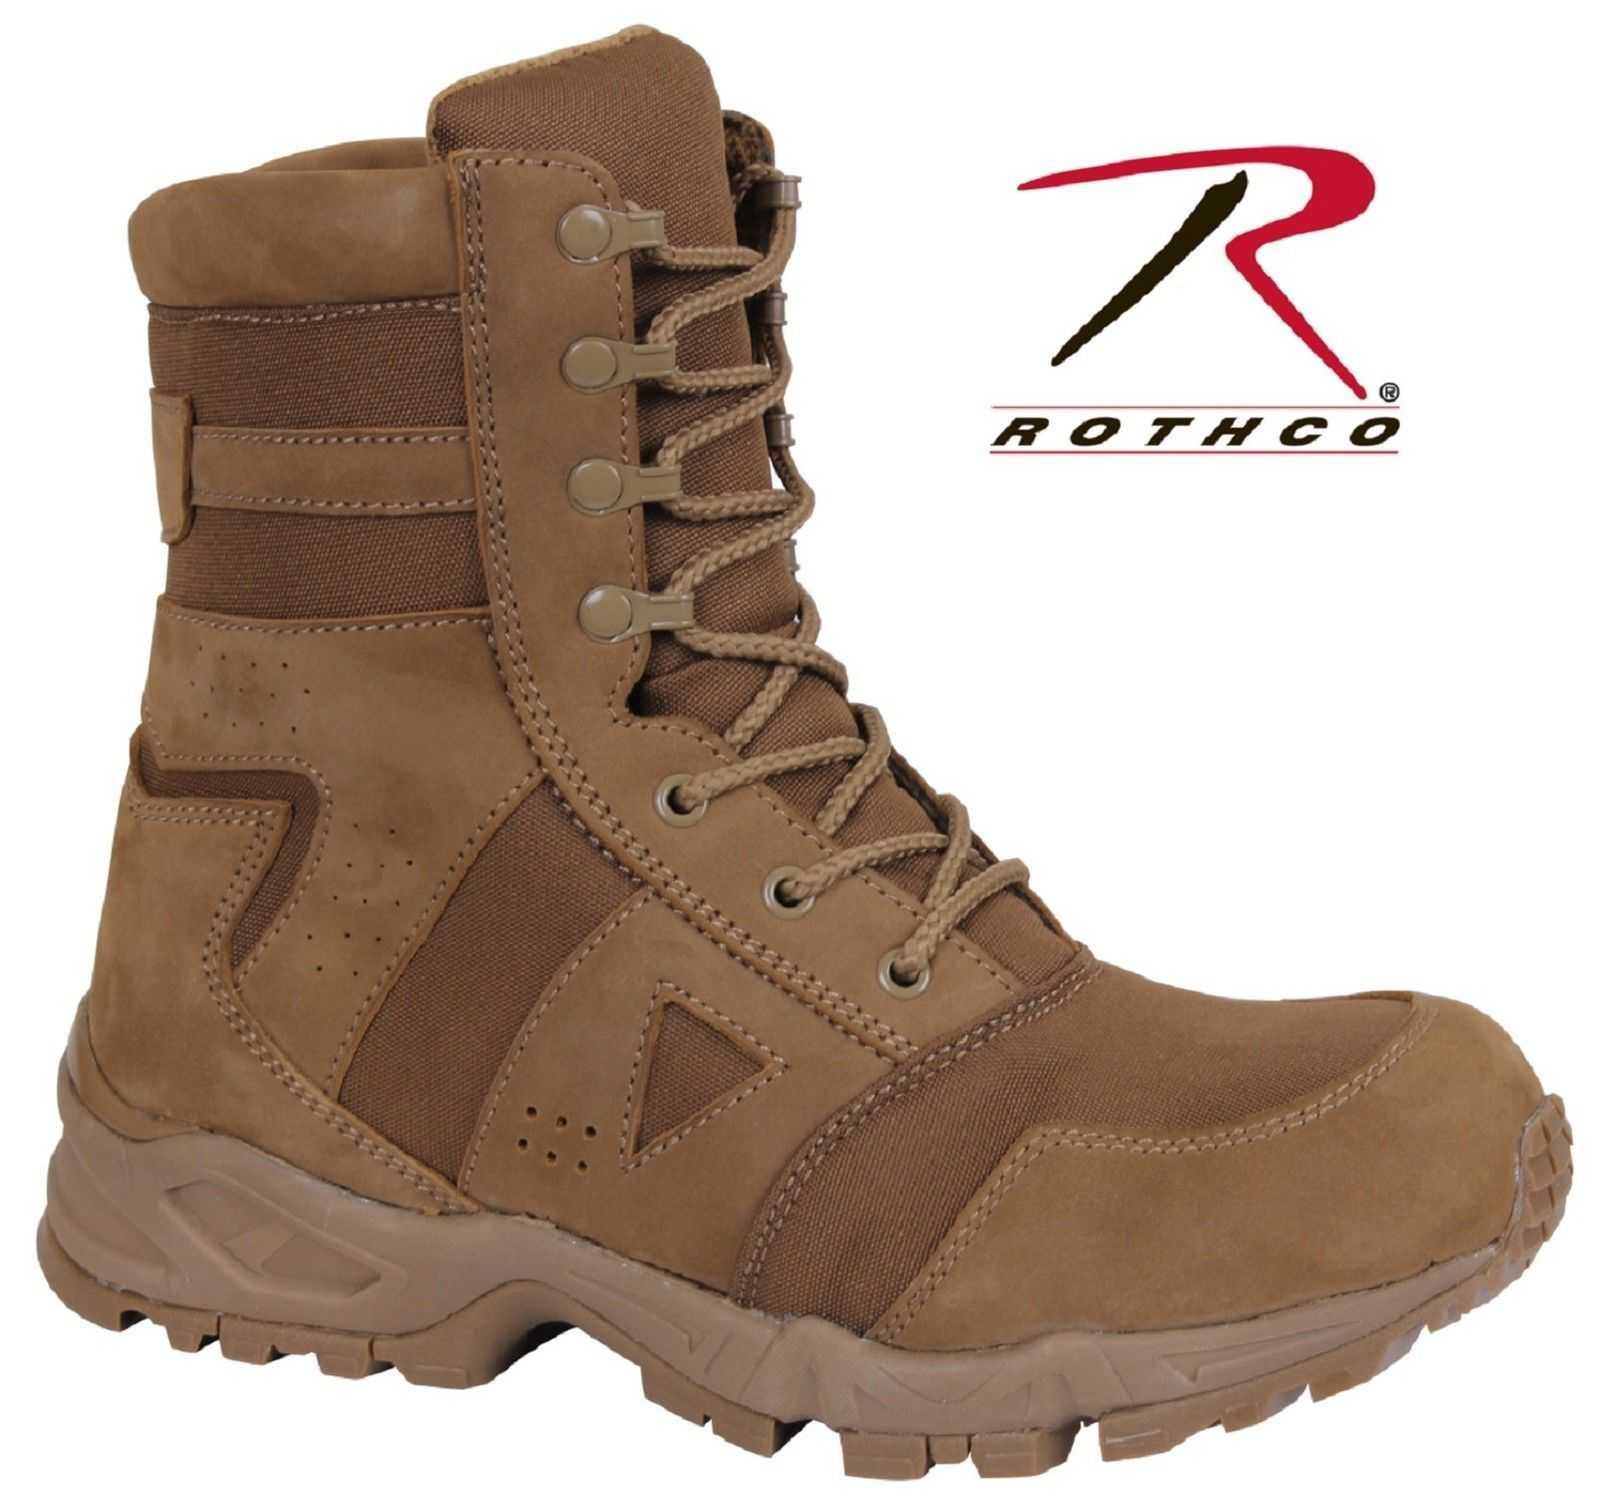 Coyote Brown Ar 670 1 Forced Entry Tactical Boots Completely Compliant To Military Regulation Ar 670 1 Da Pam 670 1 Section 20 3 Boot Standards Iso 9001 Cert